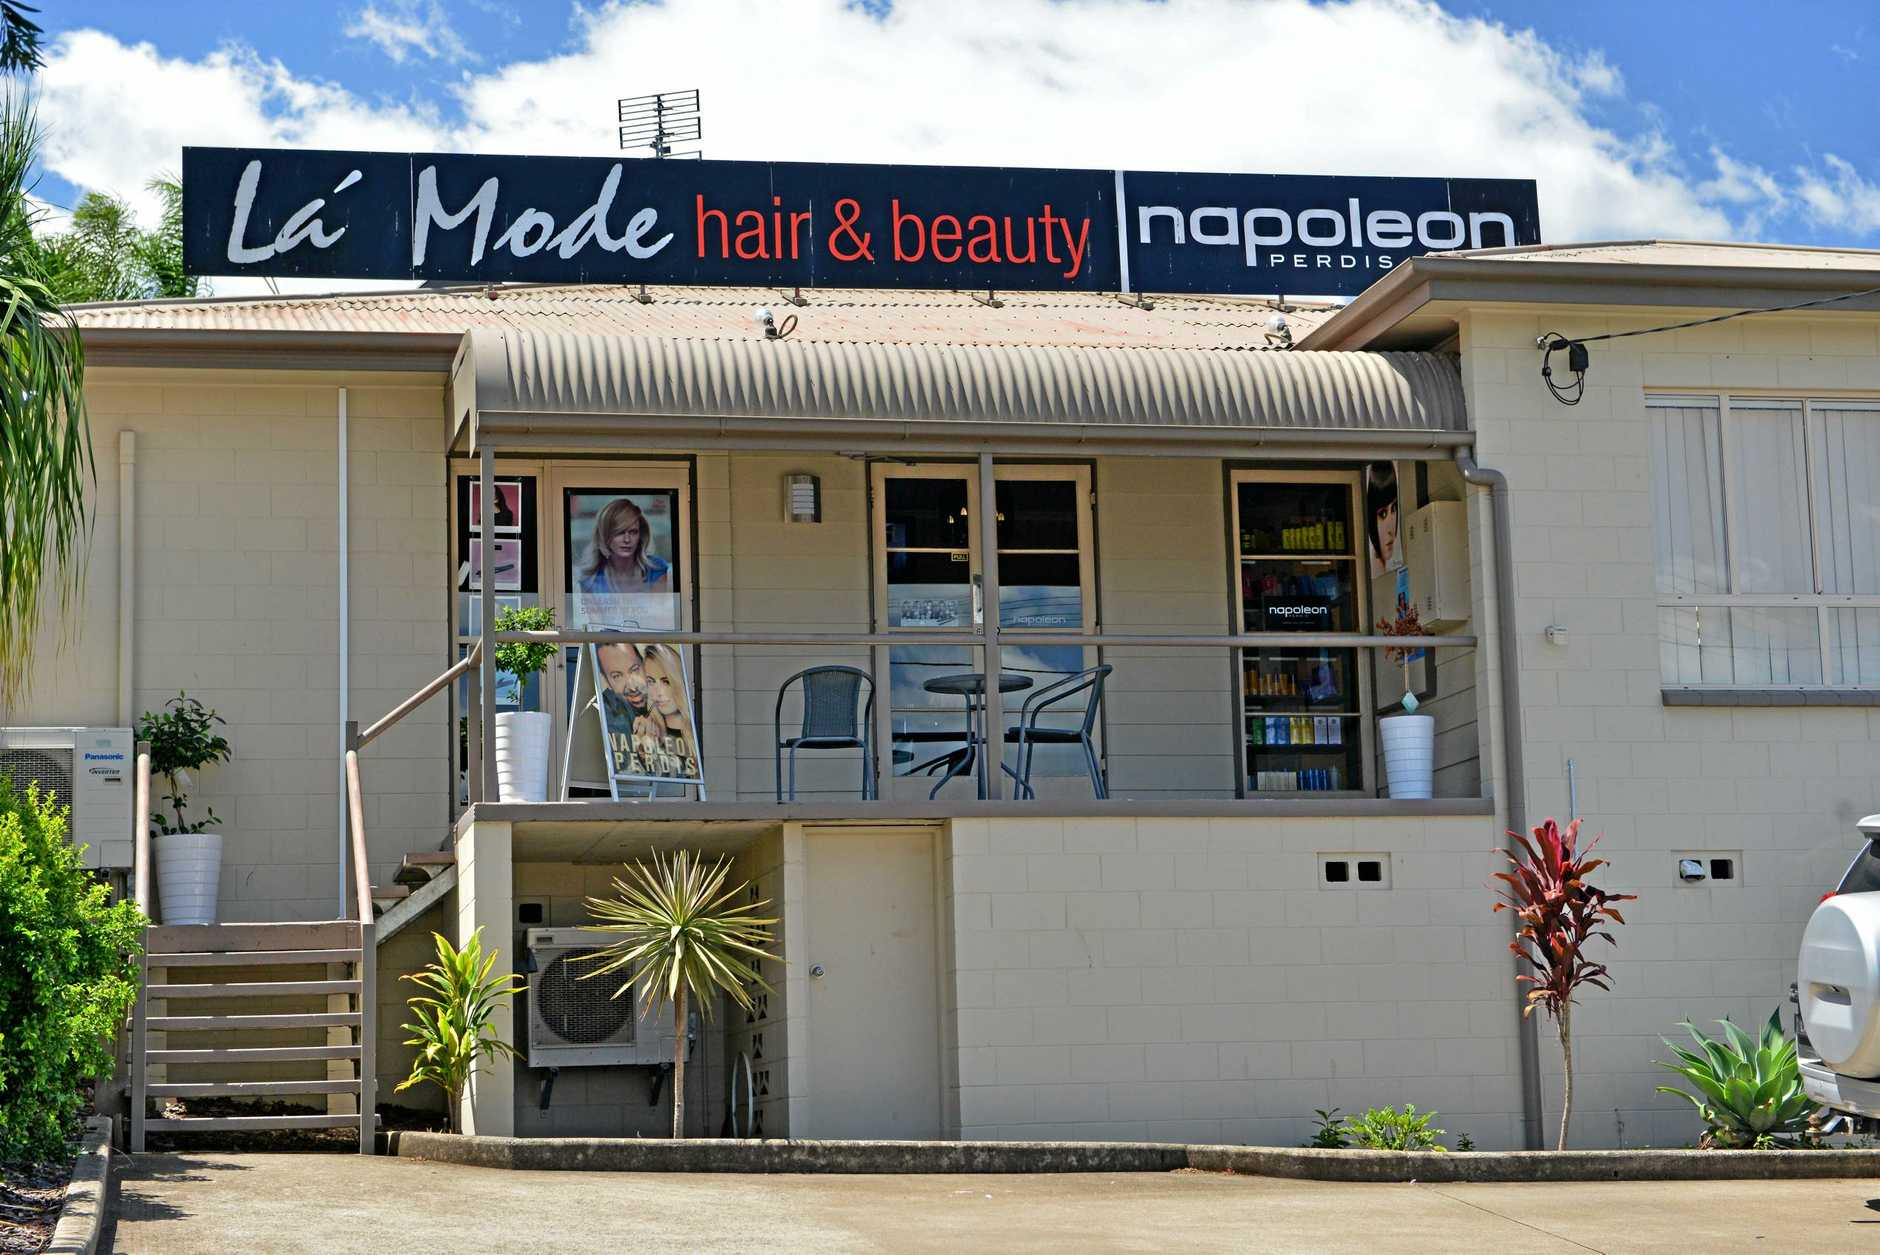 La Mode Hair and Beauty, Barter Street, Gympie. Photo Patrick Woods / Gympie Times